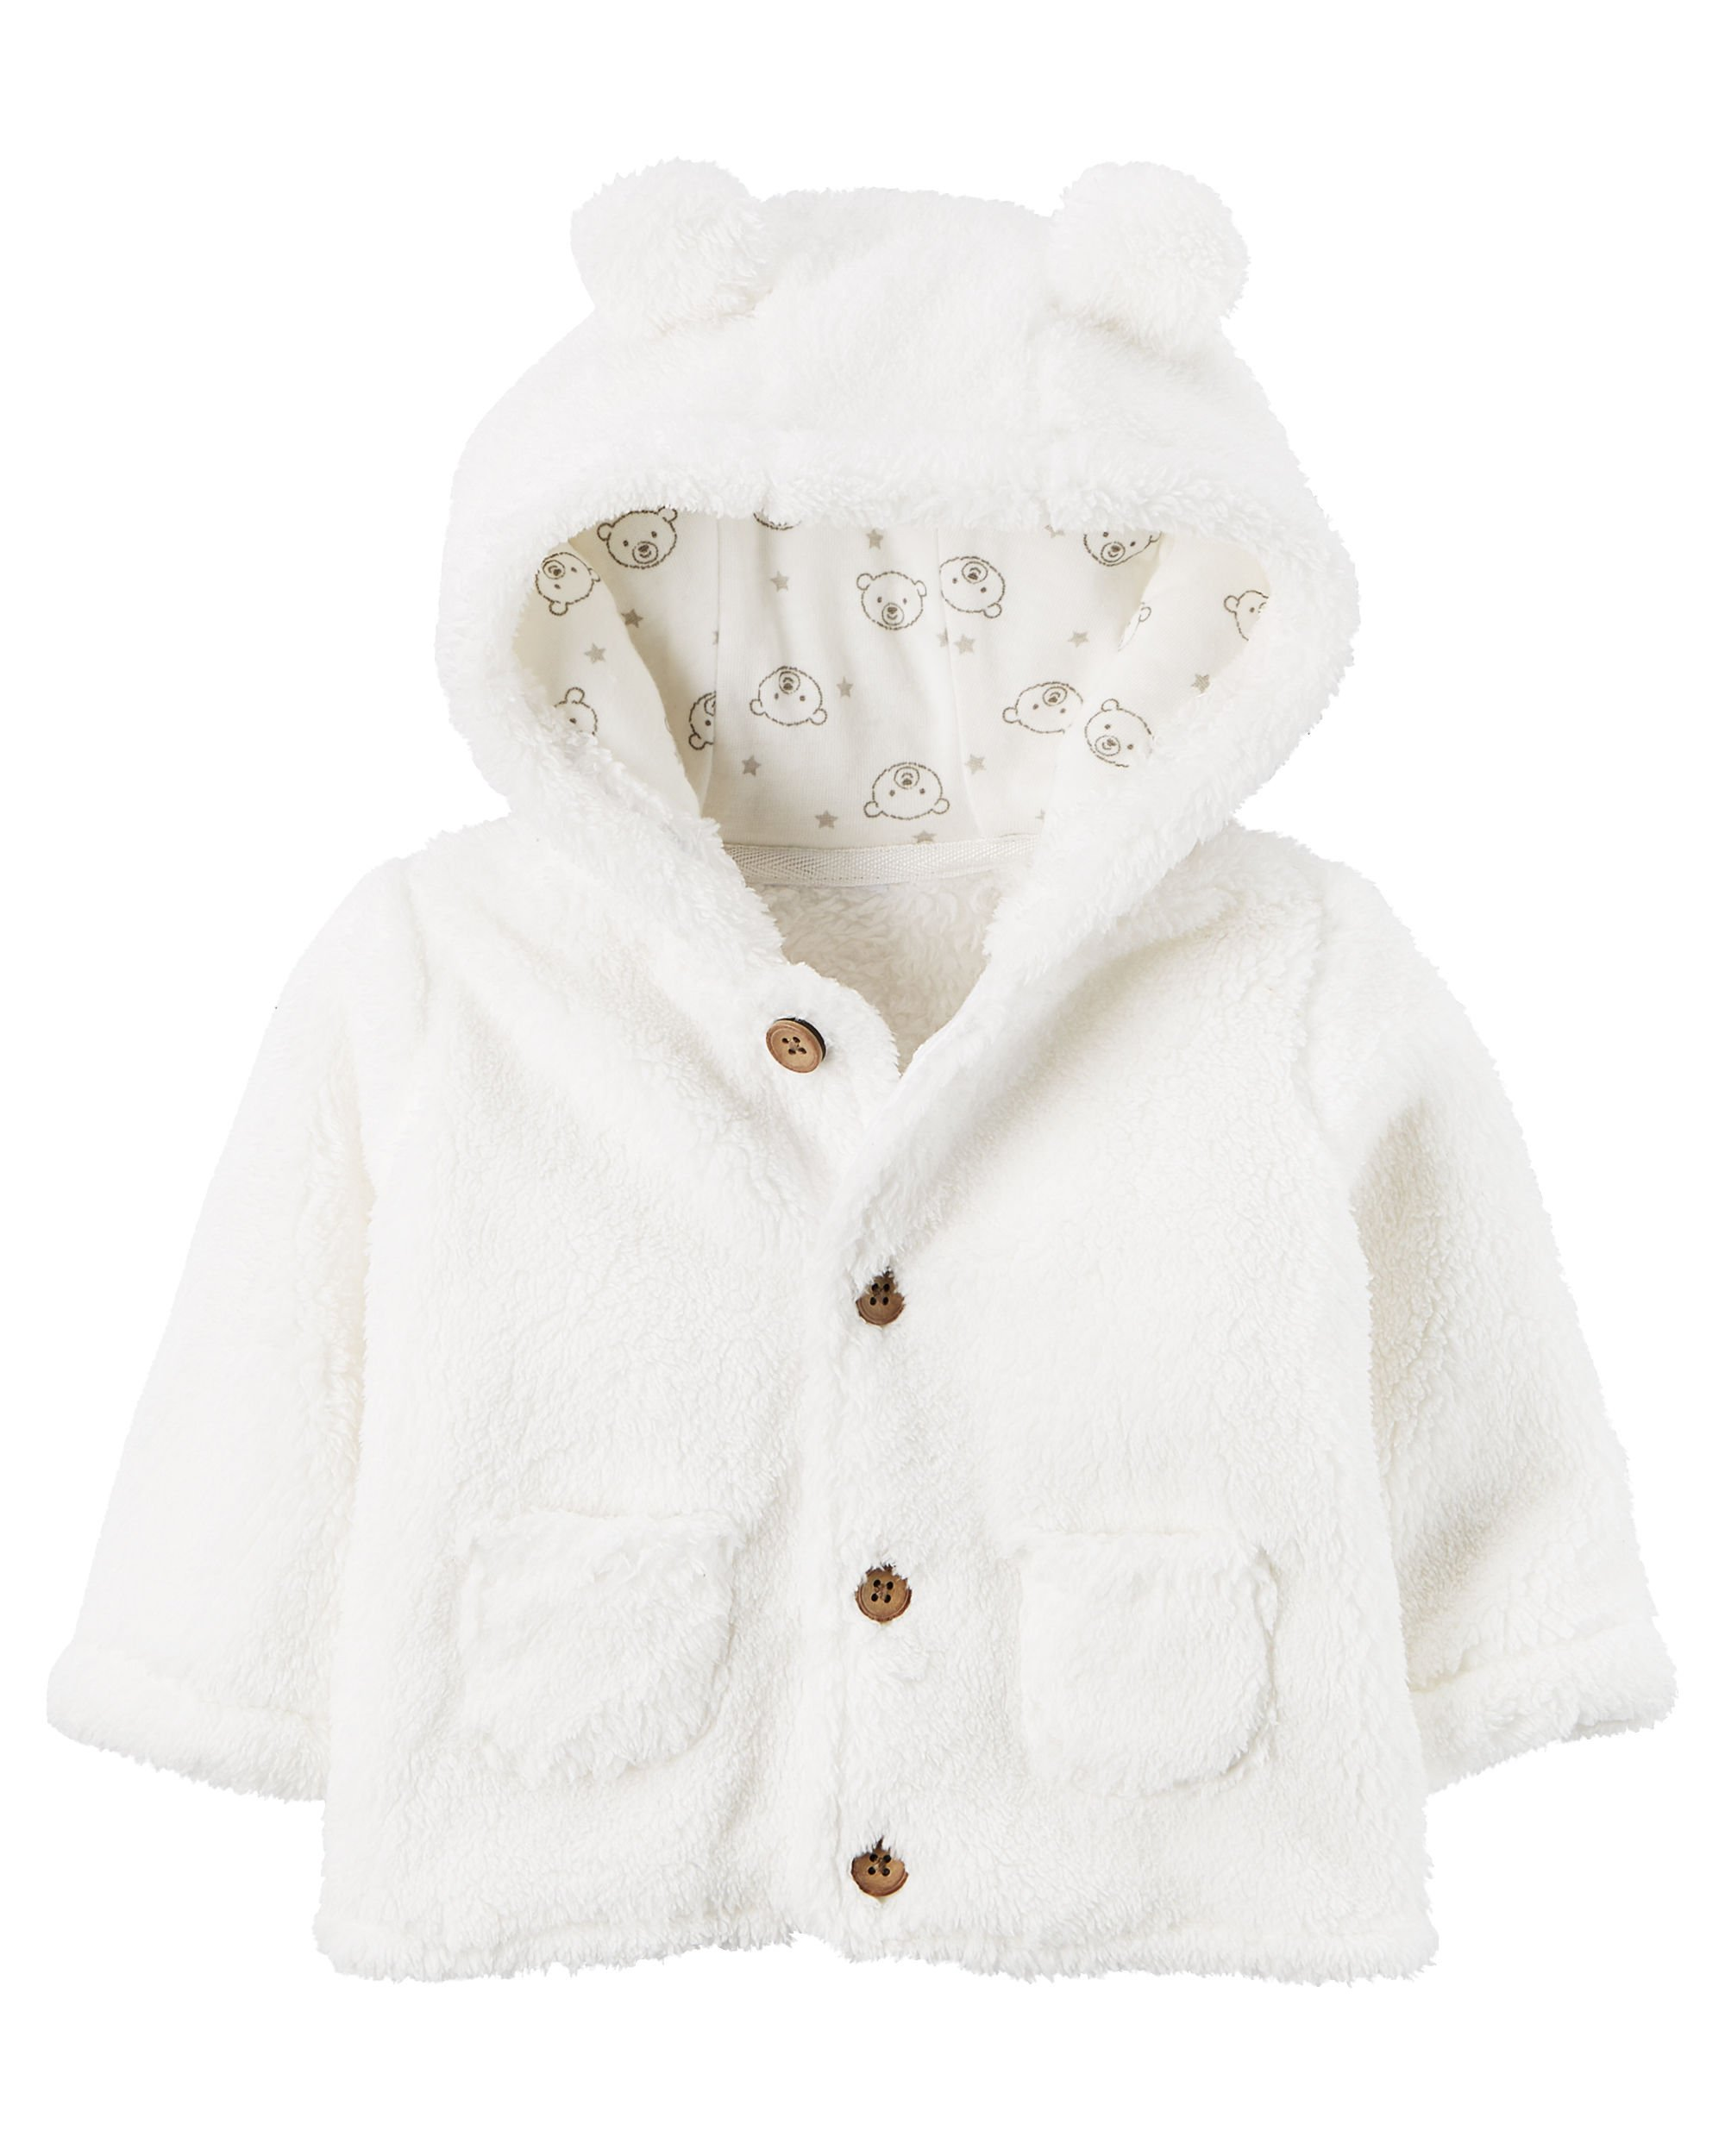 Carter's Baby Hooded Sherpa Jacket White 3 Months by Carter's